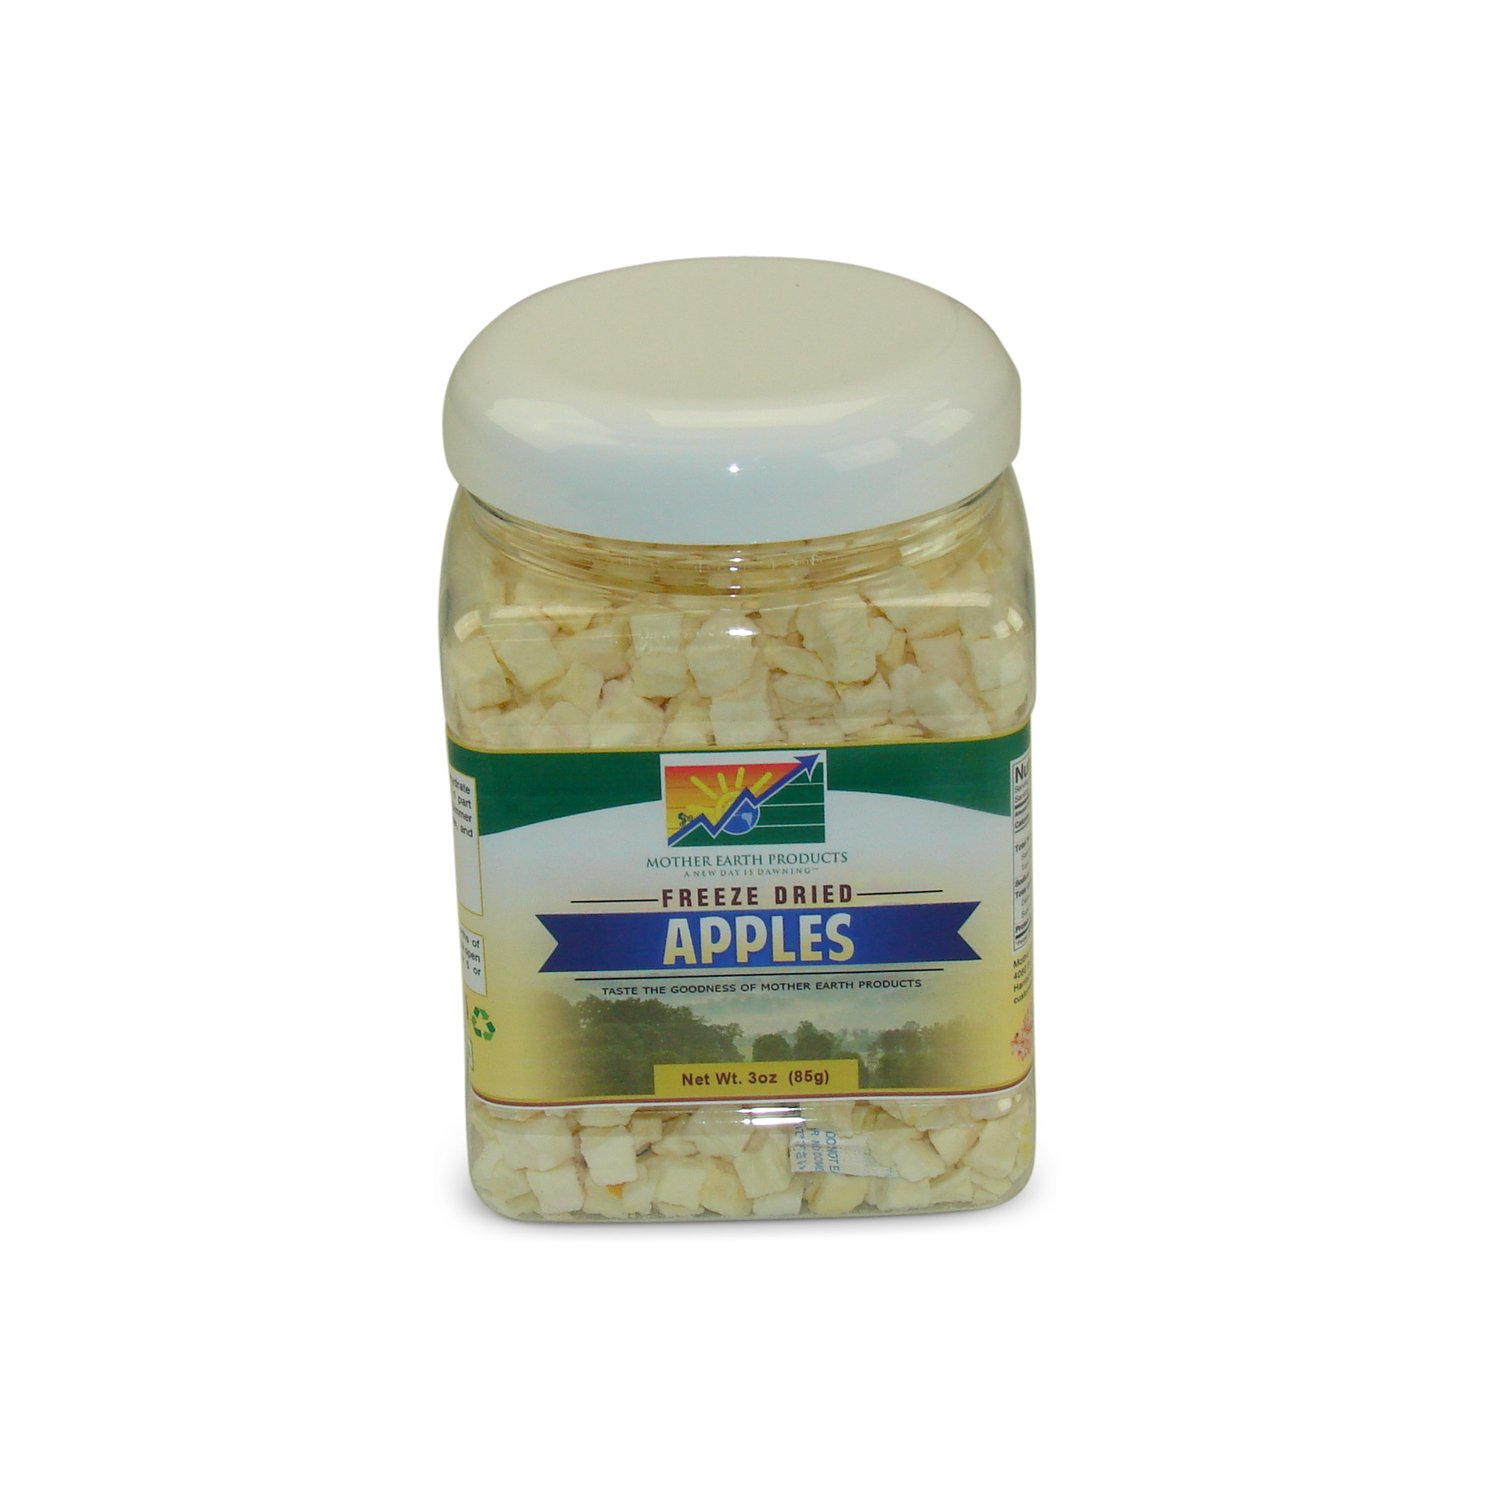 Mother Earth Products Freeze Dried Apples, Net Wt 3oz (85g) by Mother Earth Products